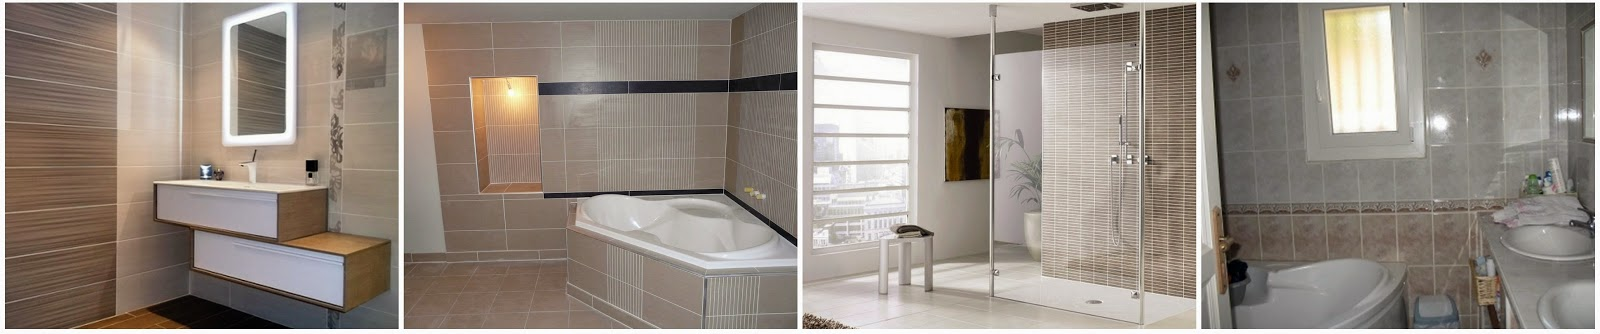 revetement sol salle de bain pas cher devis degat des eaux paris. Black Bedroom Furniture Sets. Home Design Ideas